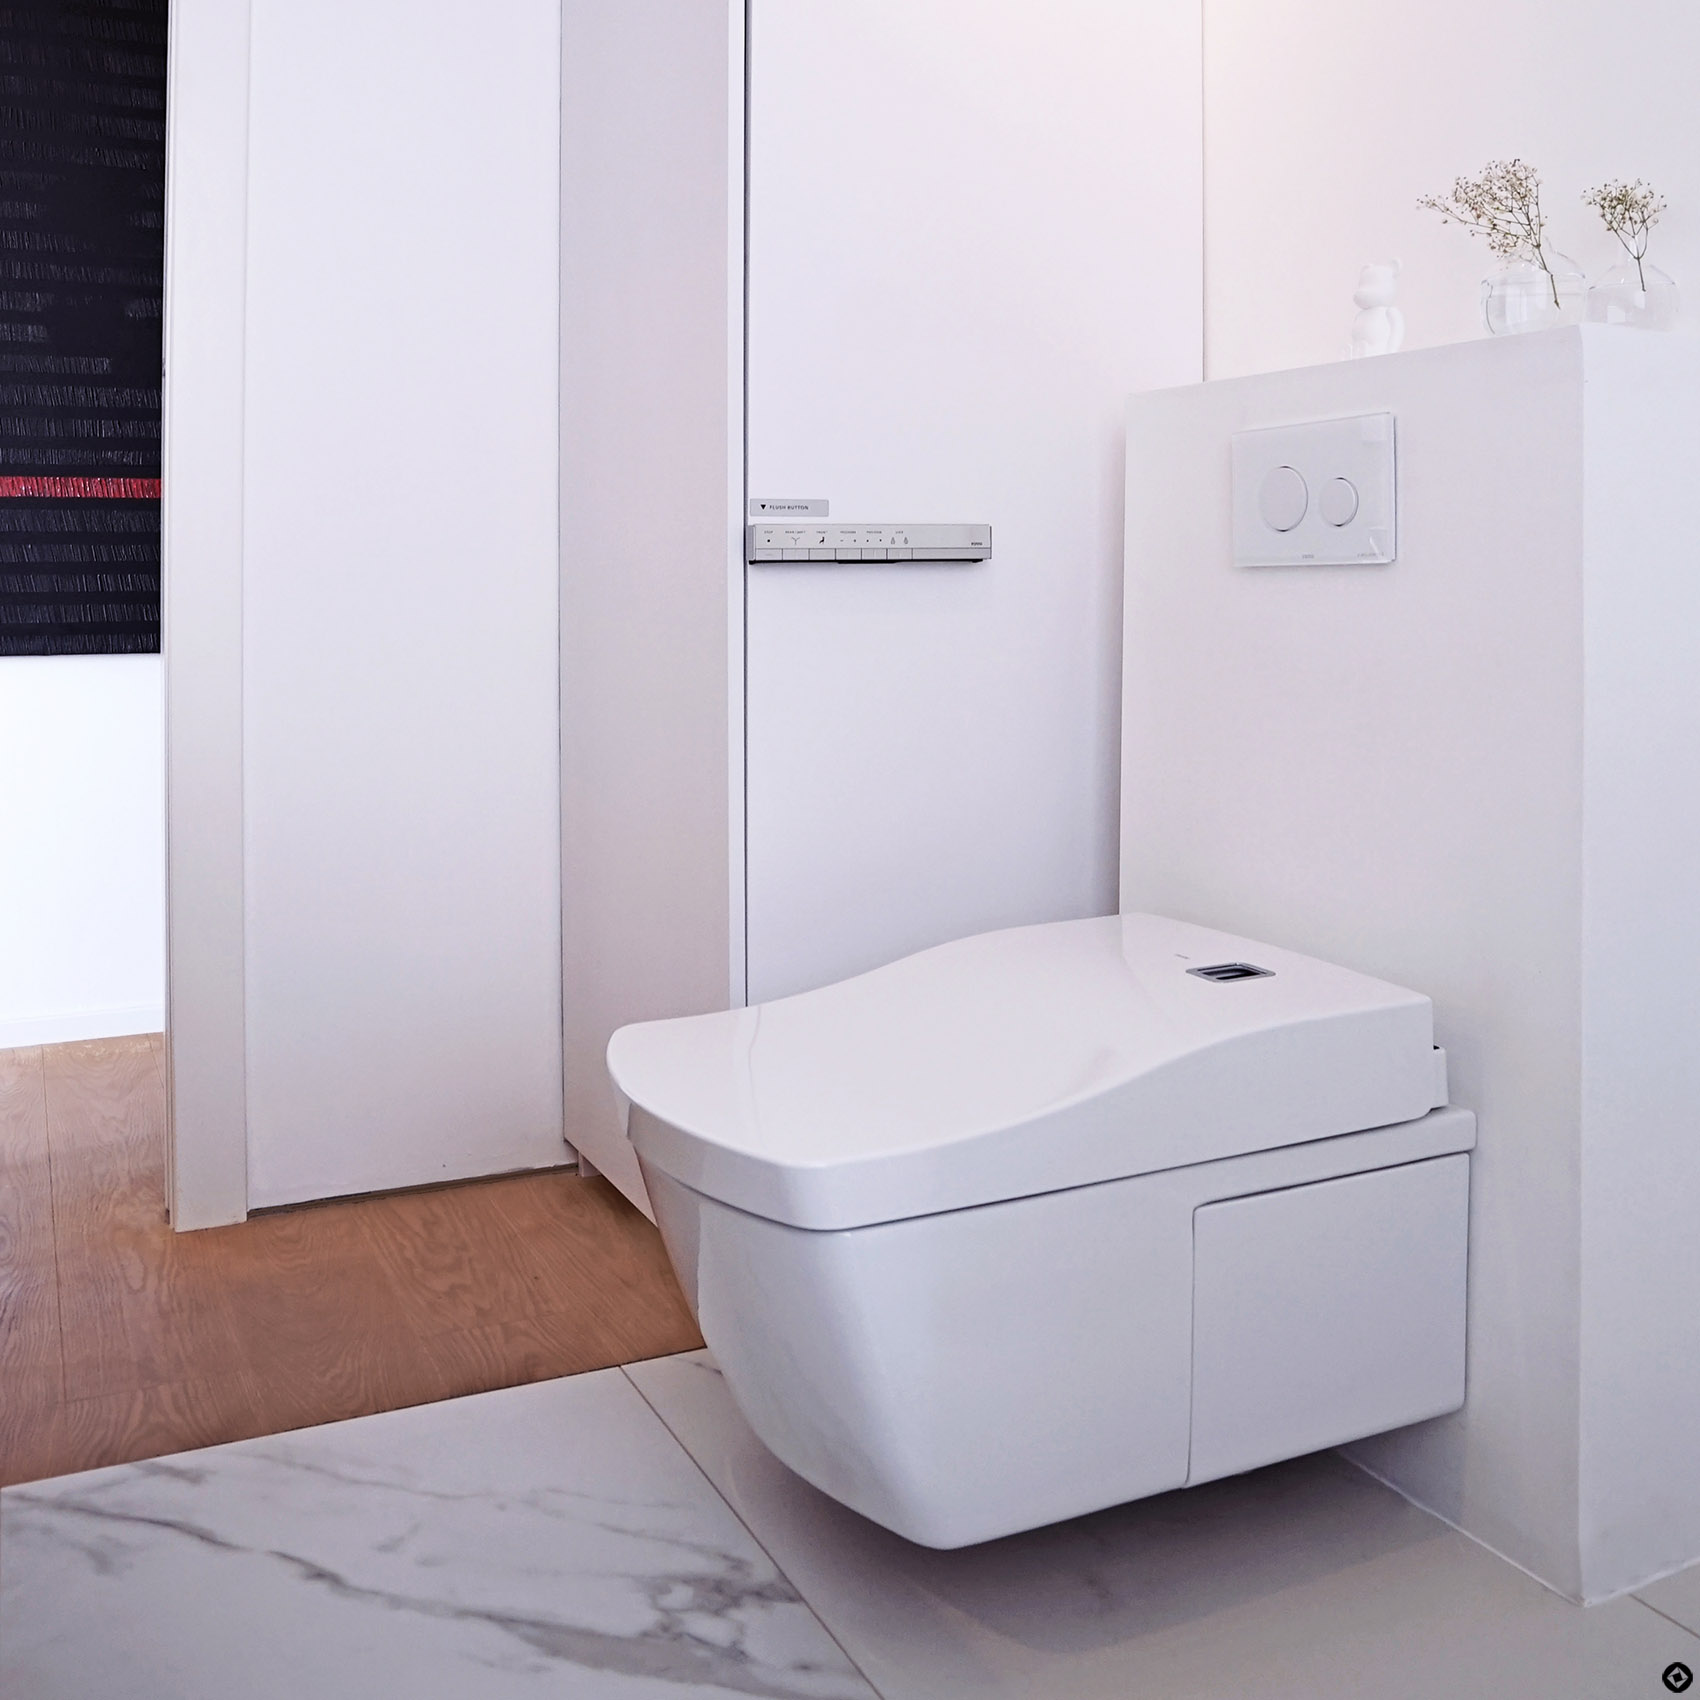 joyanahome2 washlet toto neorest blog design jo yana. Black Bedroom Furniture Sets. Home Design Ideas